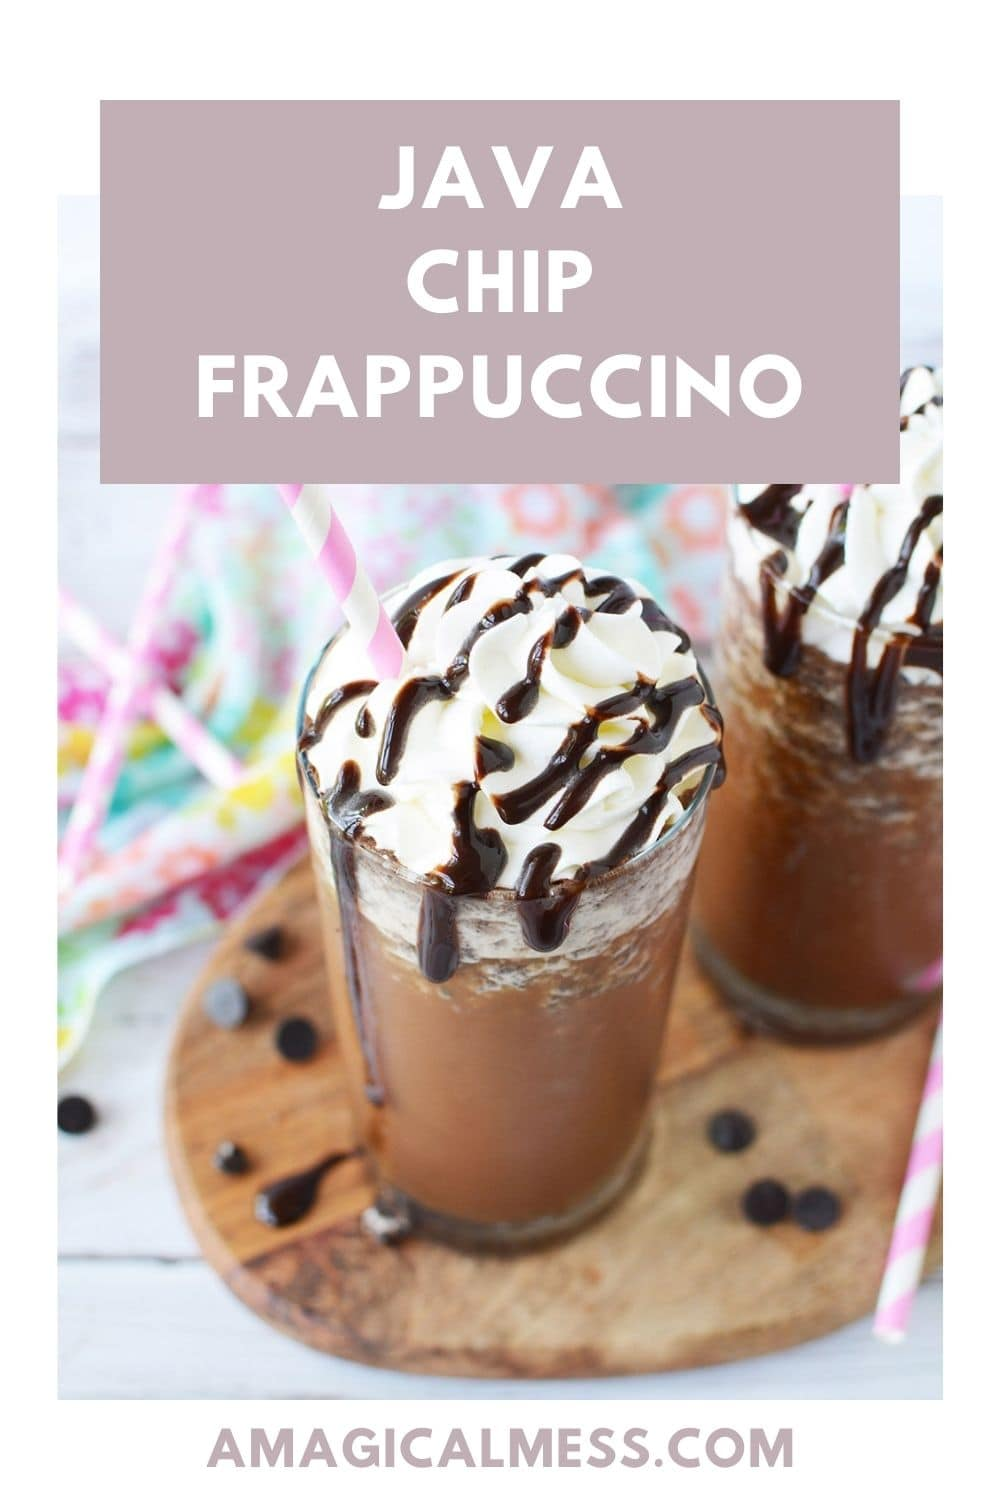 Java chip frappuccino in a glass with chips around it